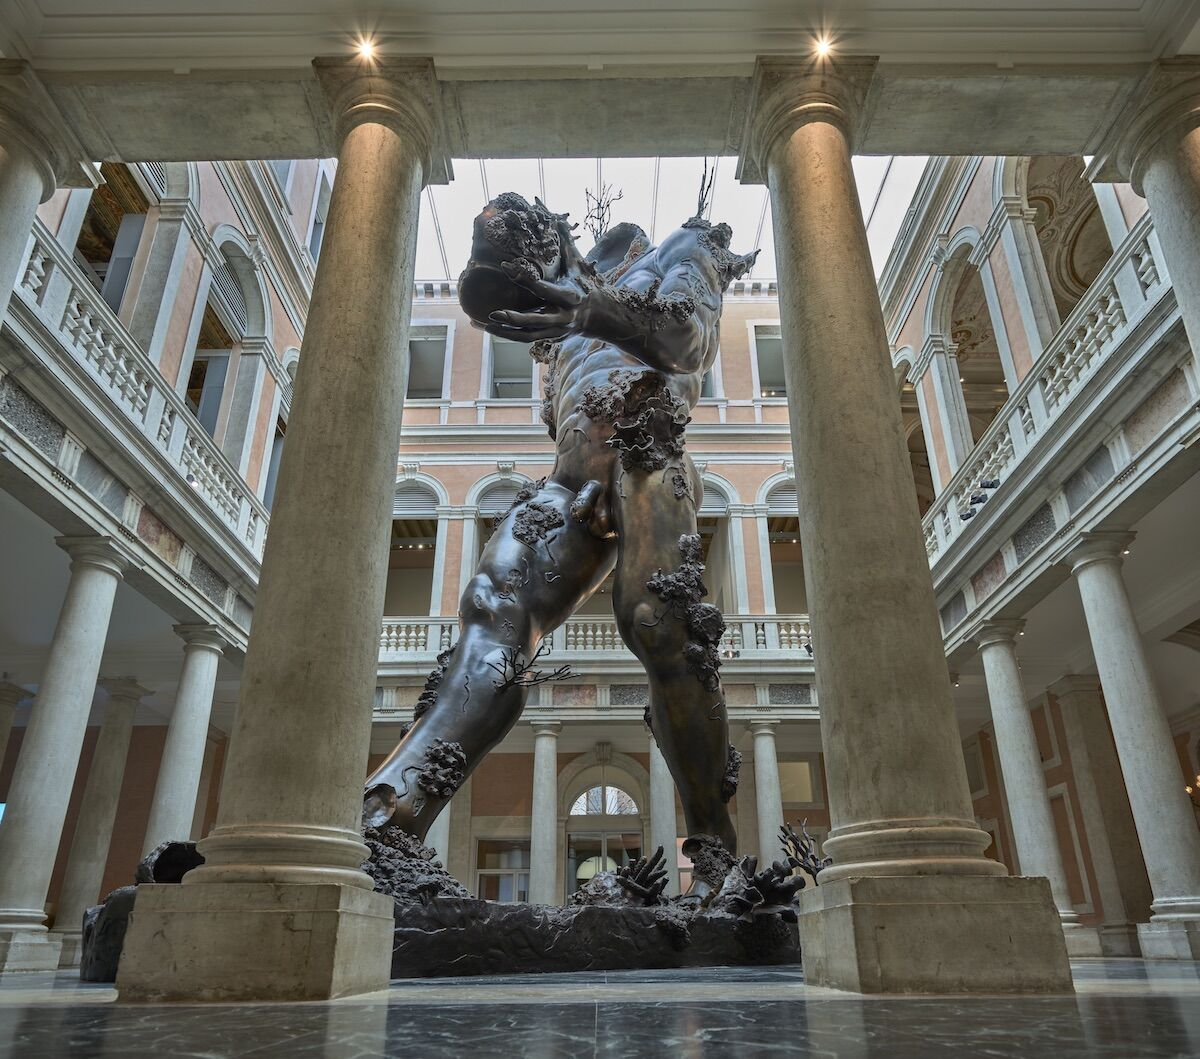 """Damien Hirst, Demon with Bowl, 2014, as installed in Palazzo Grassi in """"Treasures from the Wreck of the Unbelievable."""" Photo by Prudence Cuming Associates, © Damien Hirst and Science Ltd. All rights reserved, DACS 2019."""